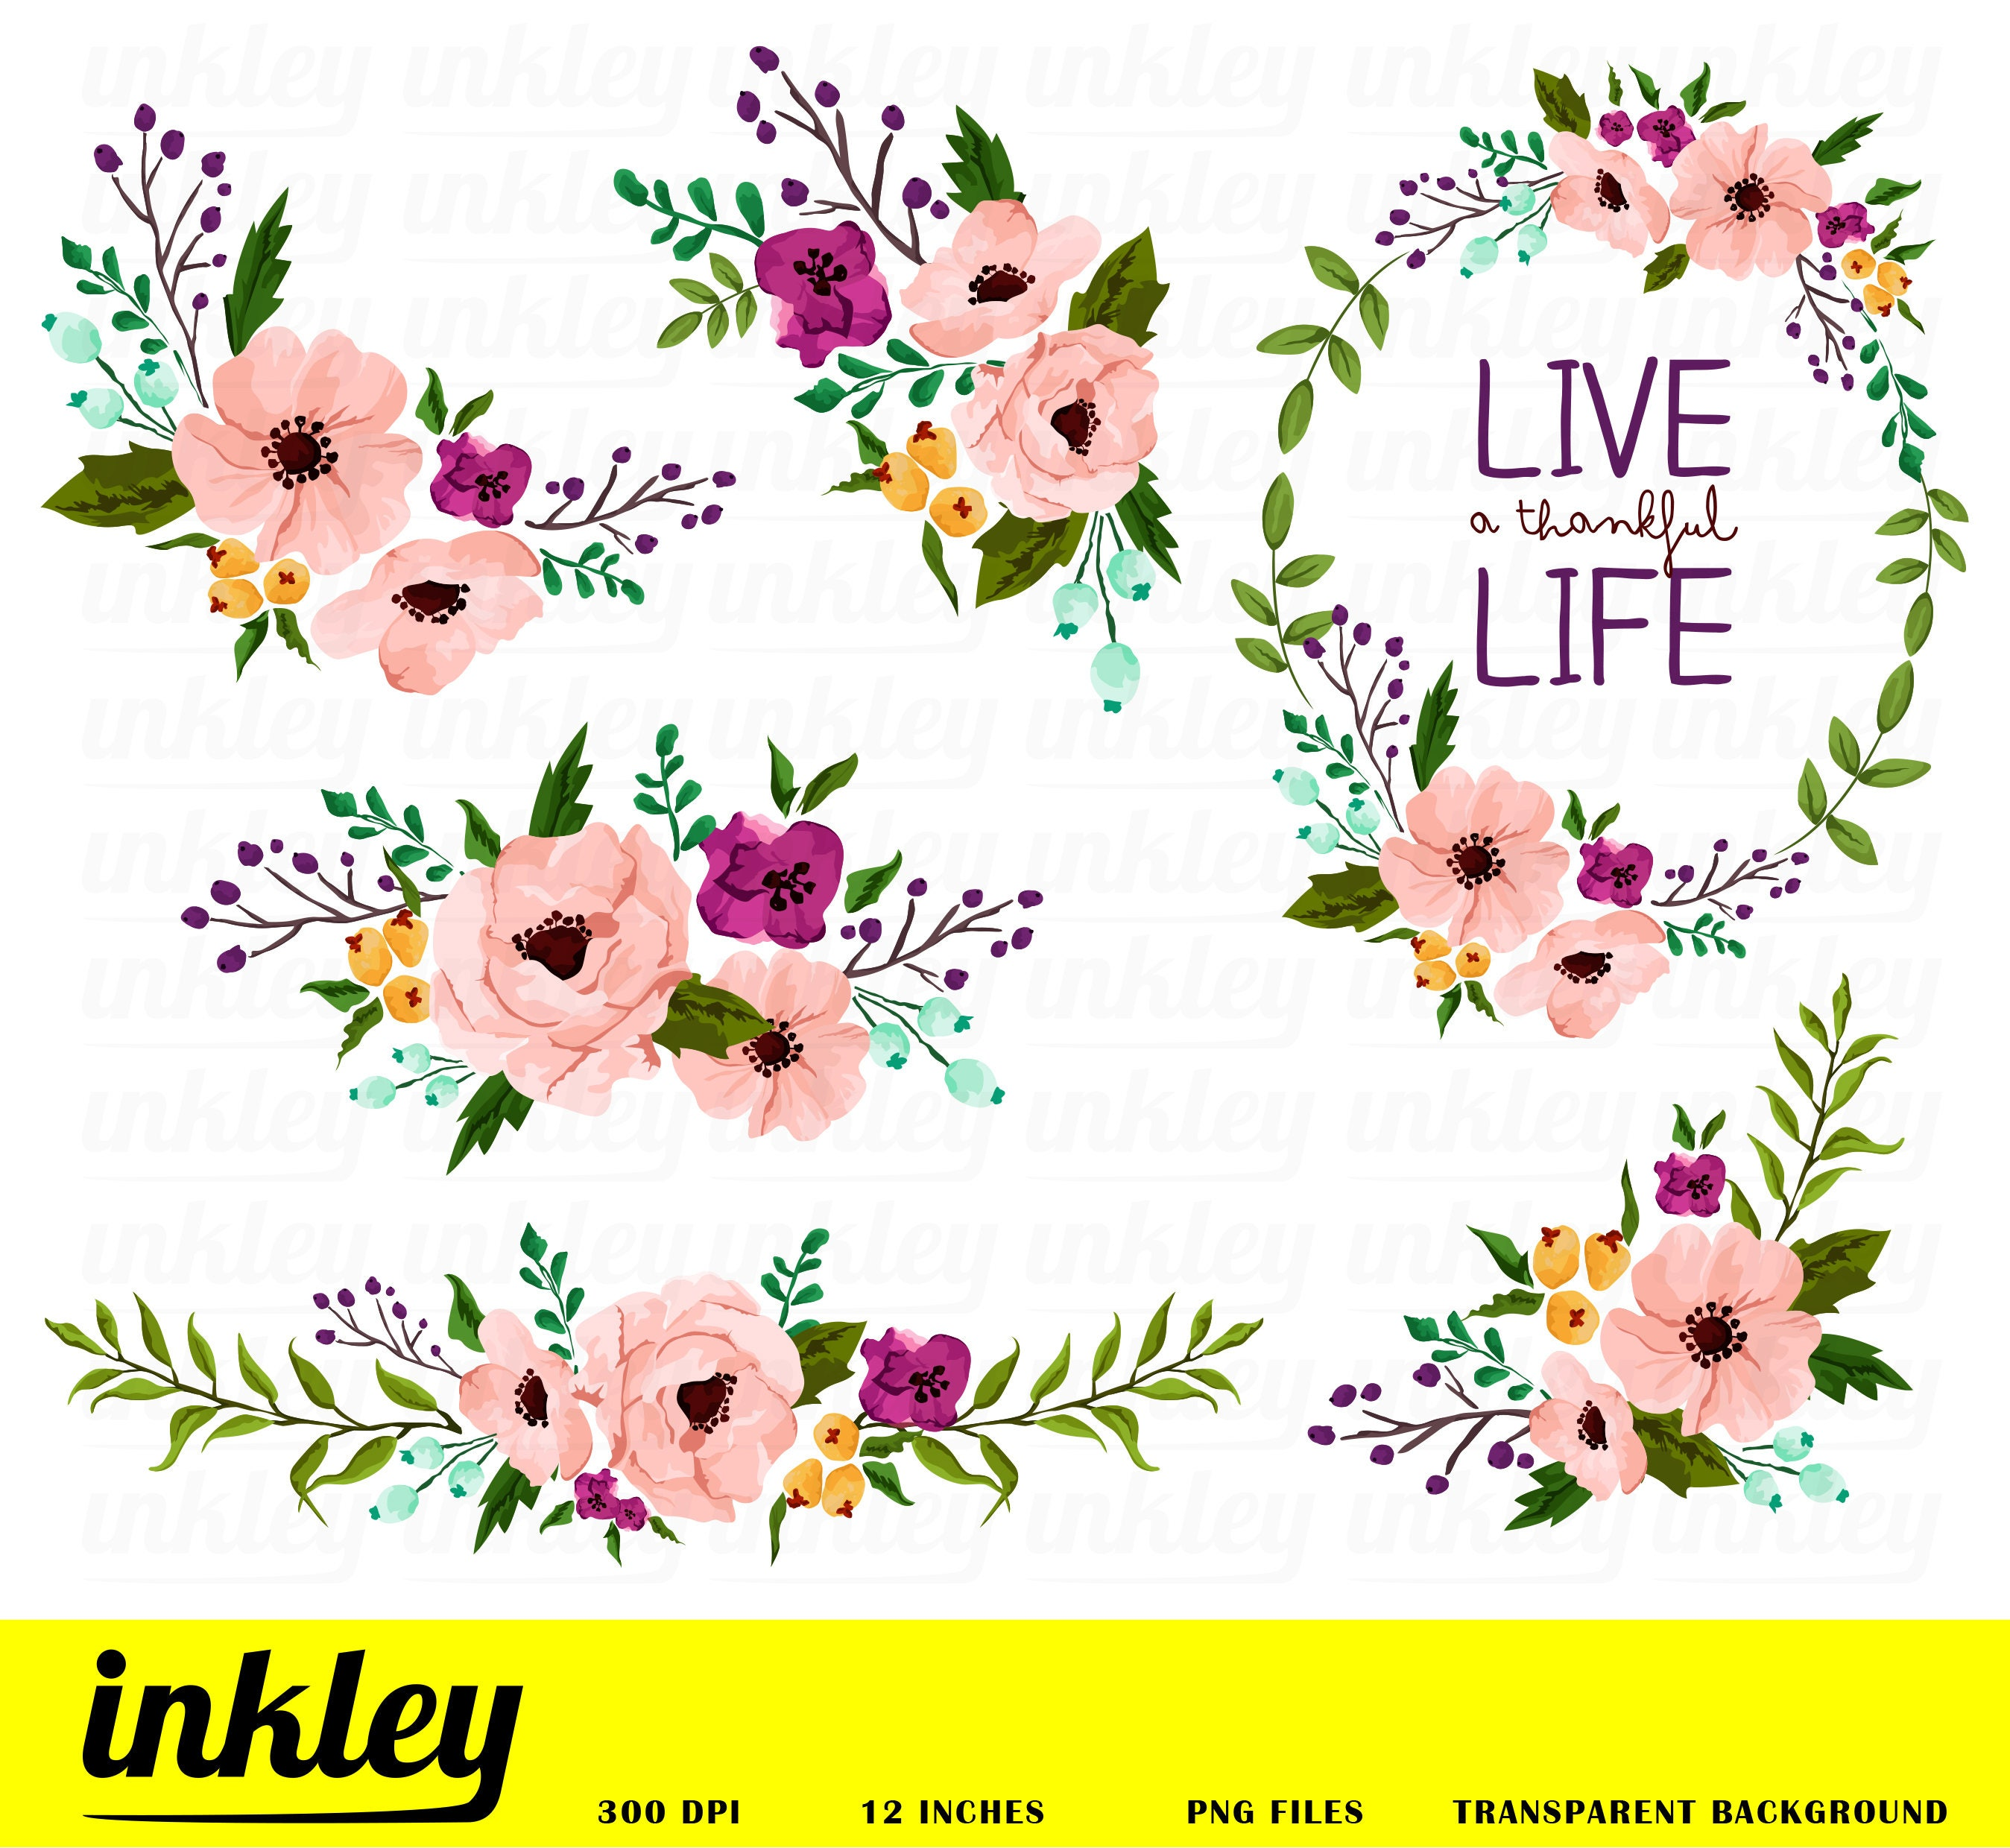 Pink flower clipart pink flower clip art pink flower png zoom mightylinksfo Image collections